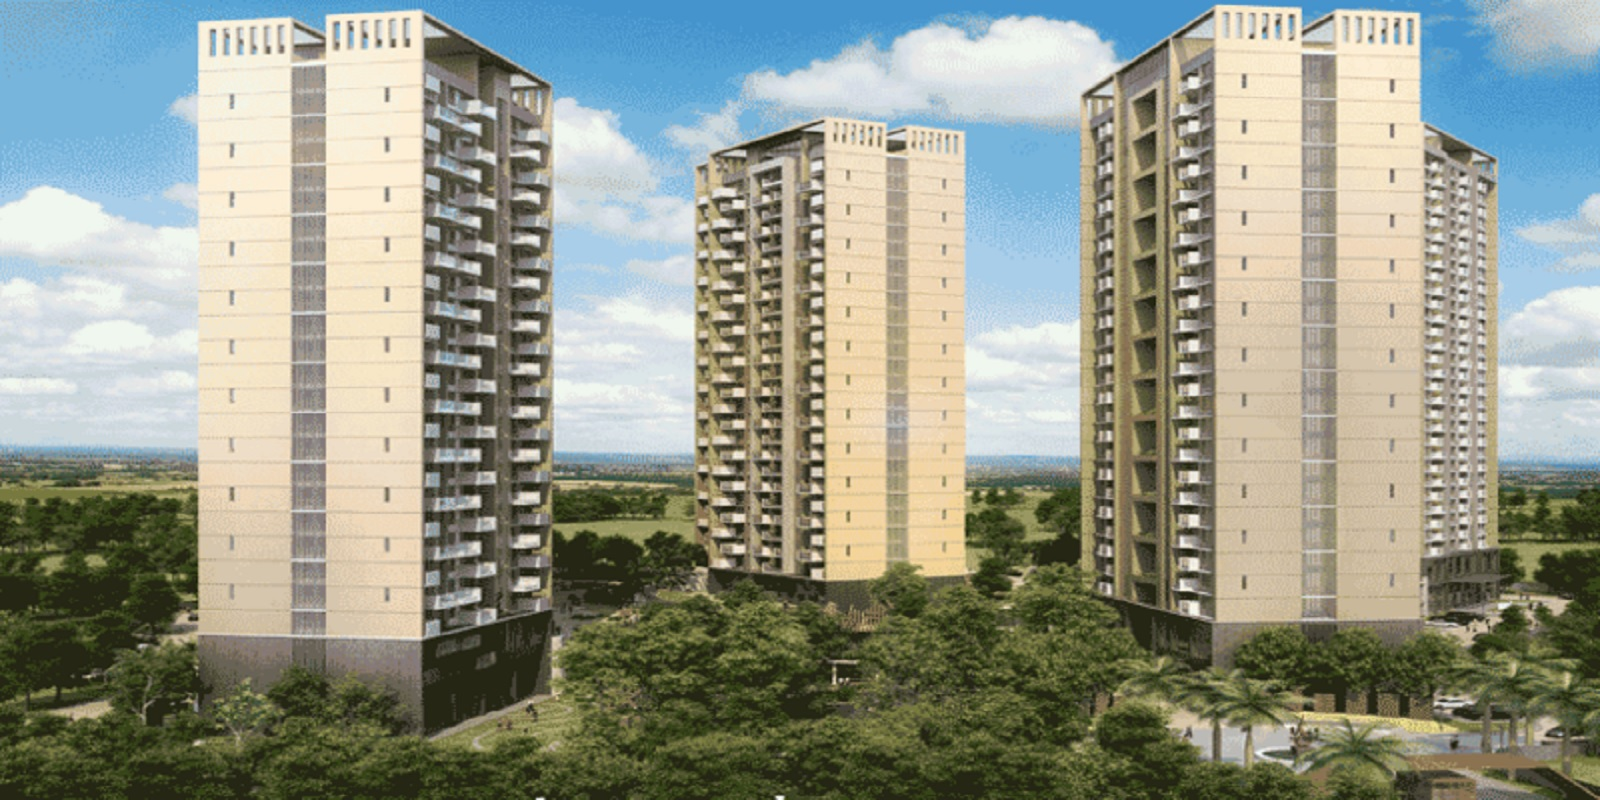 dsk dream city breeze residence project project large image1